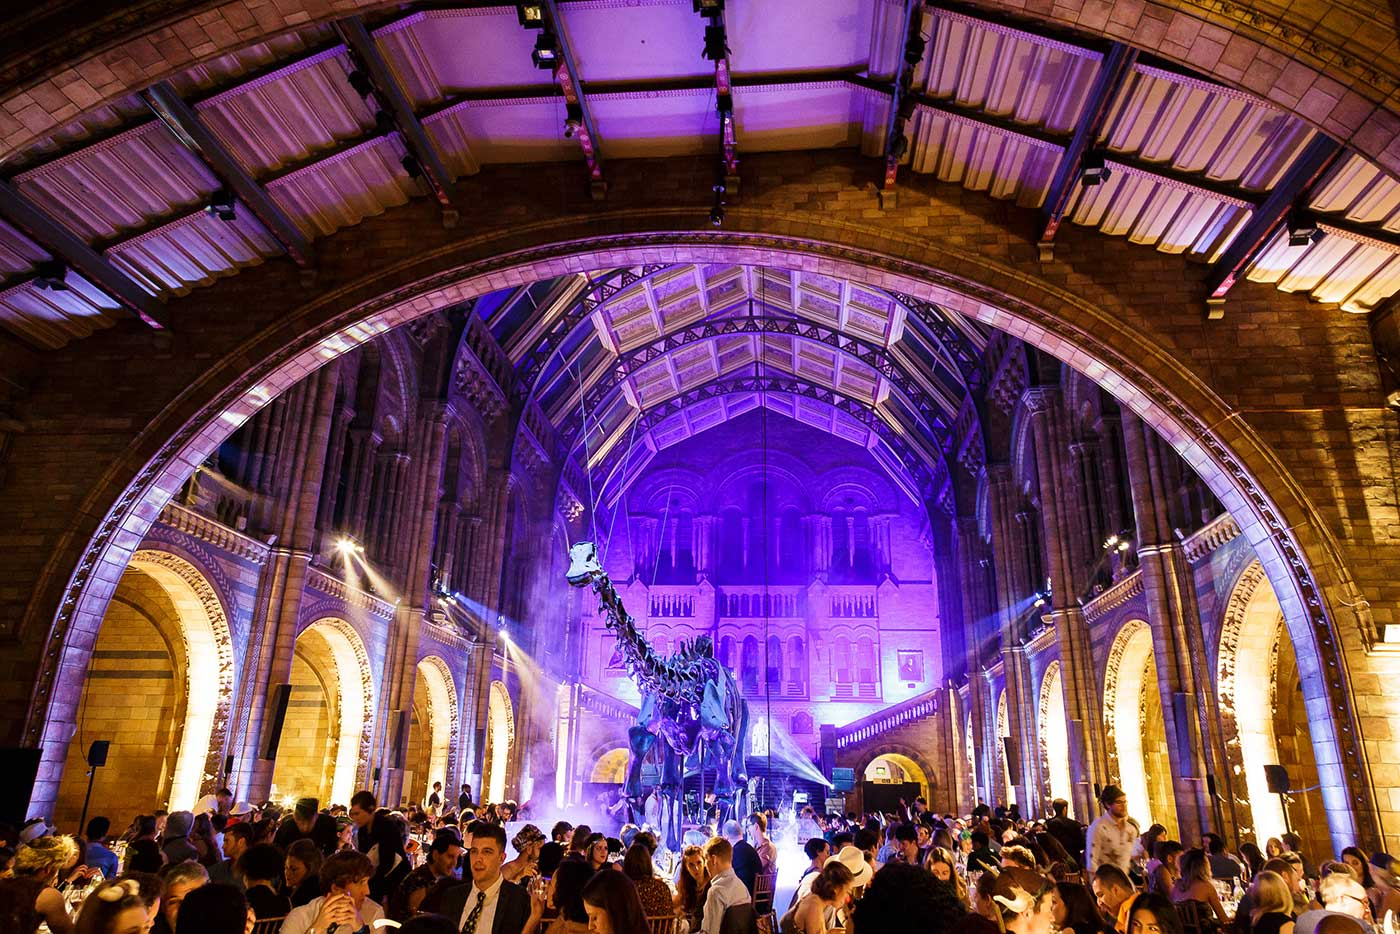 Innocent staff corporate event at the Natural History Museum